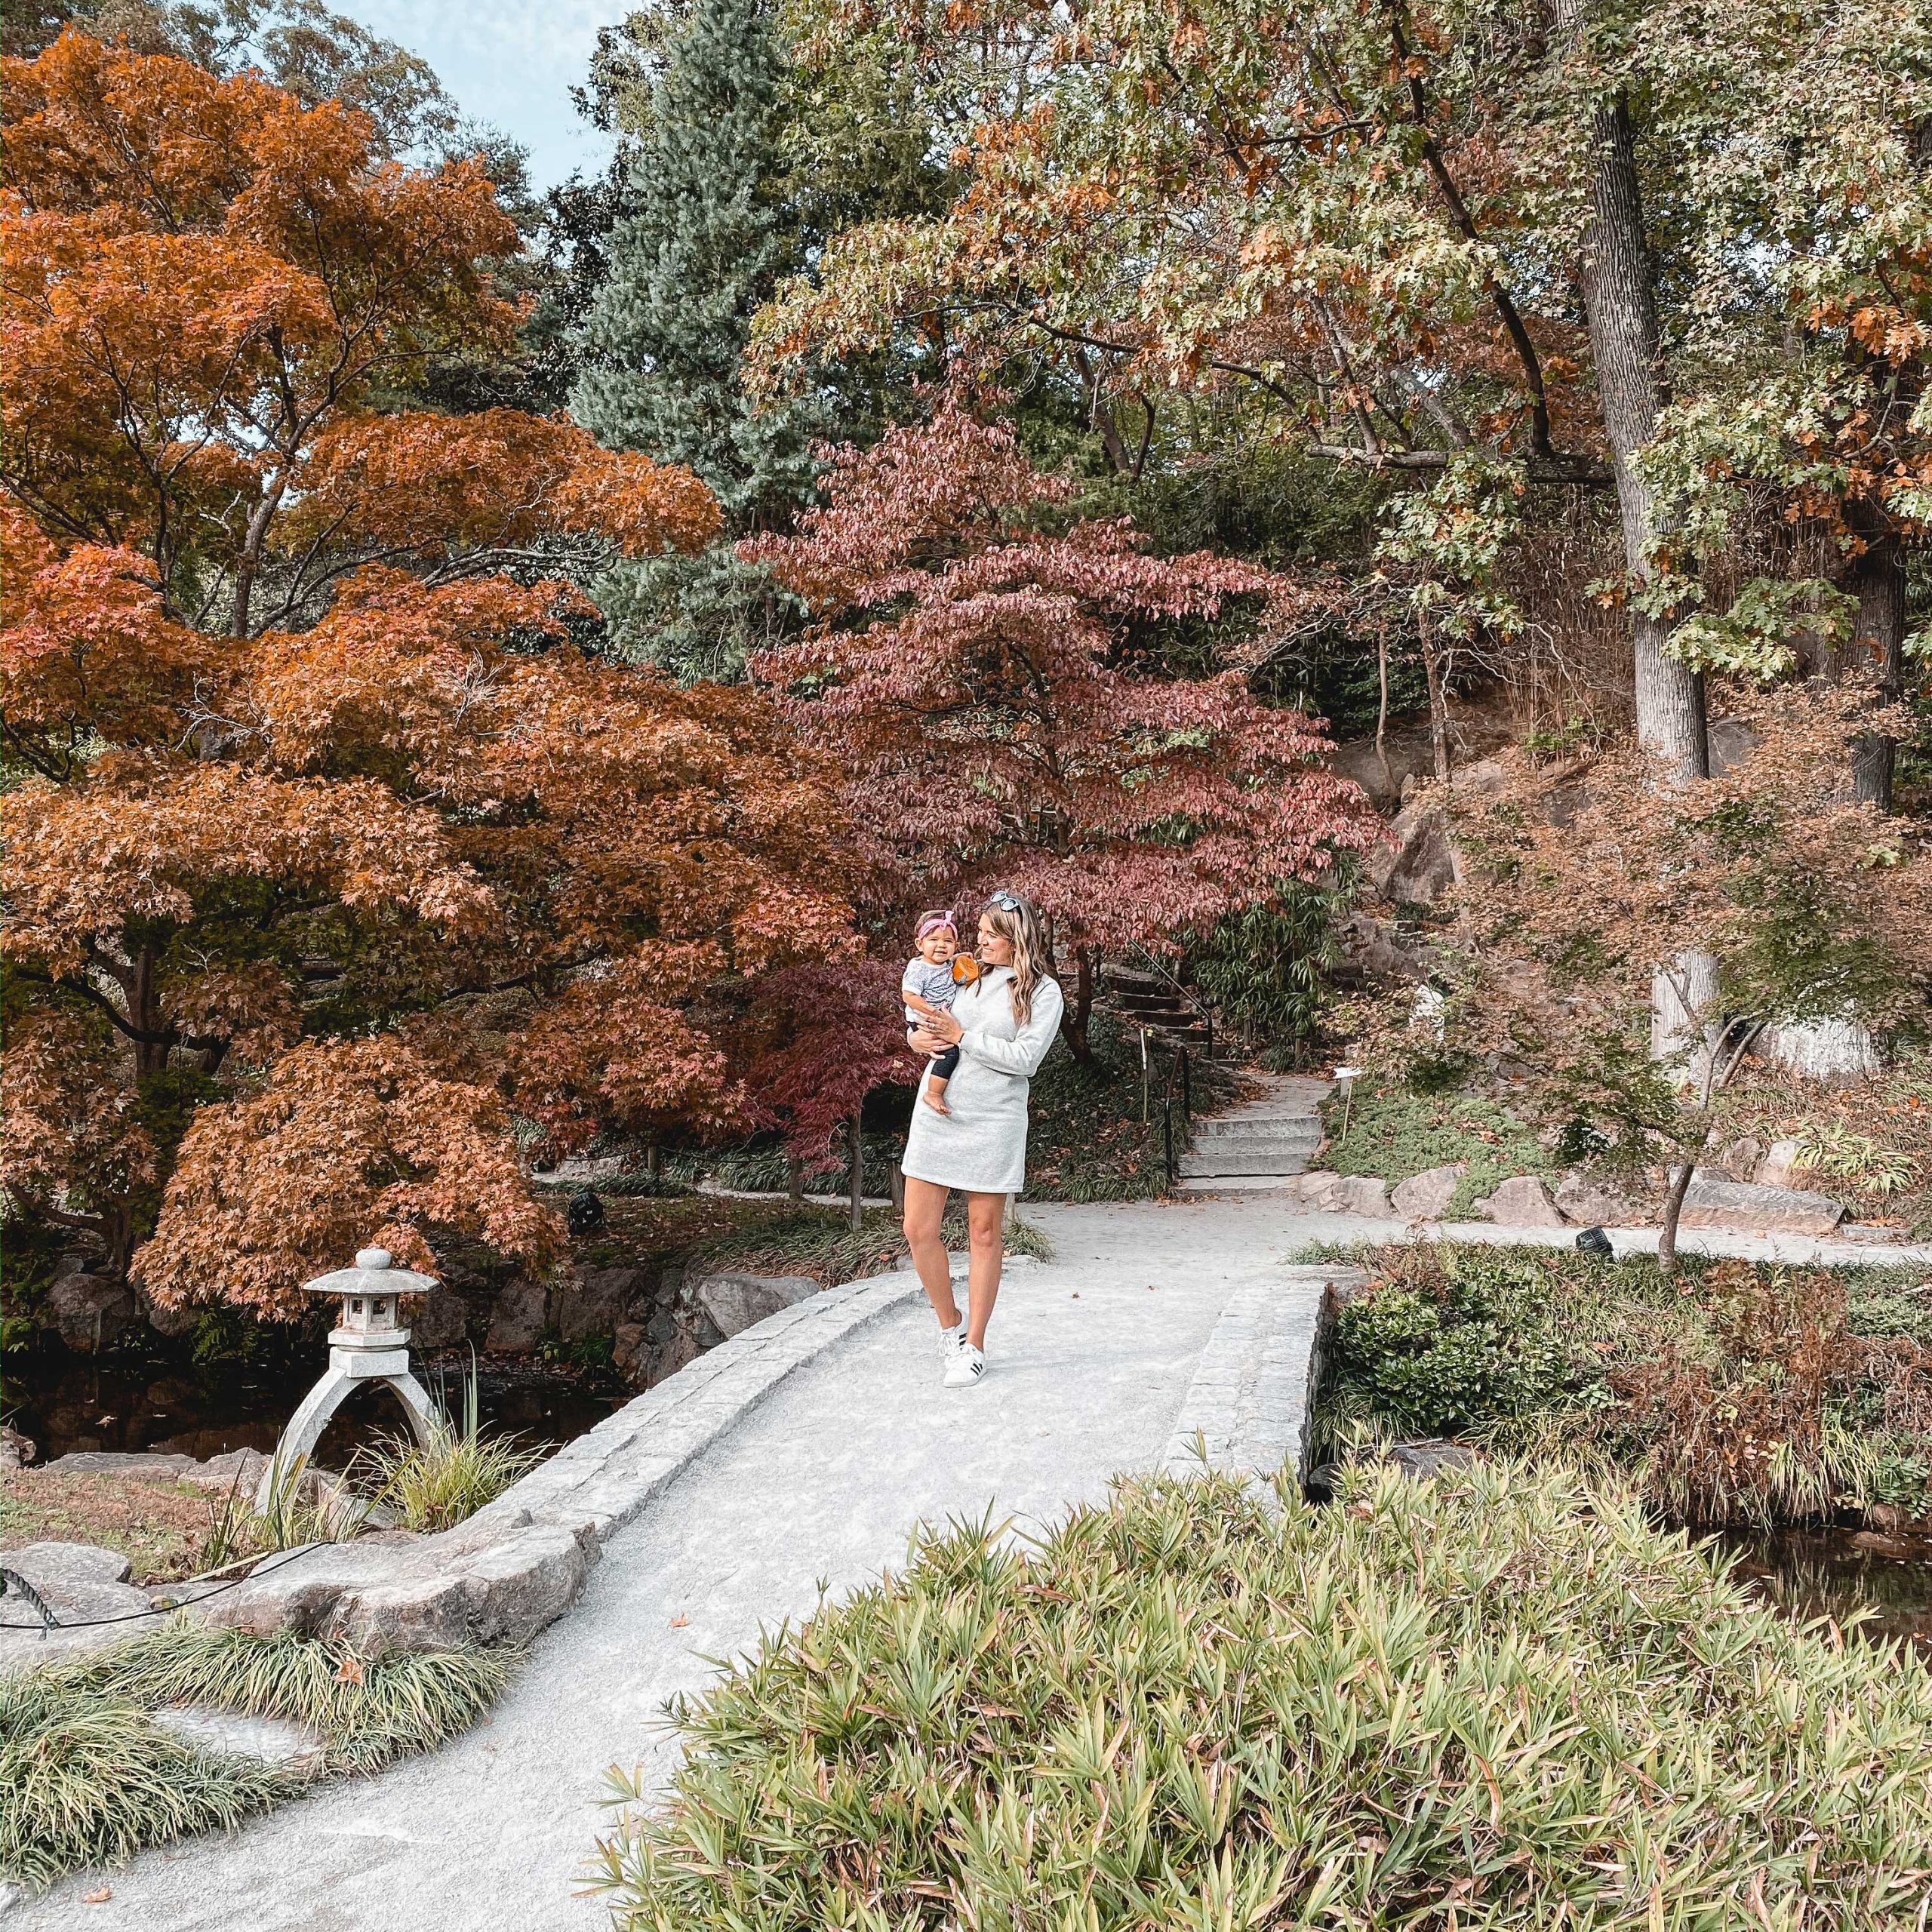 RVA blogger, Lauren Dix, shares all the best Instagram Spots in Richmond, VA! One of the best RVA photo spots is Maymont Park!